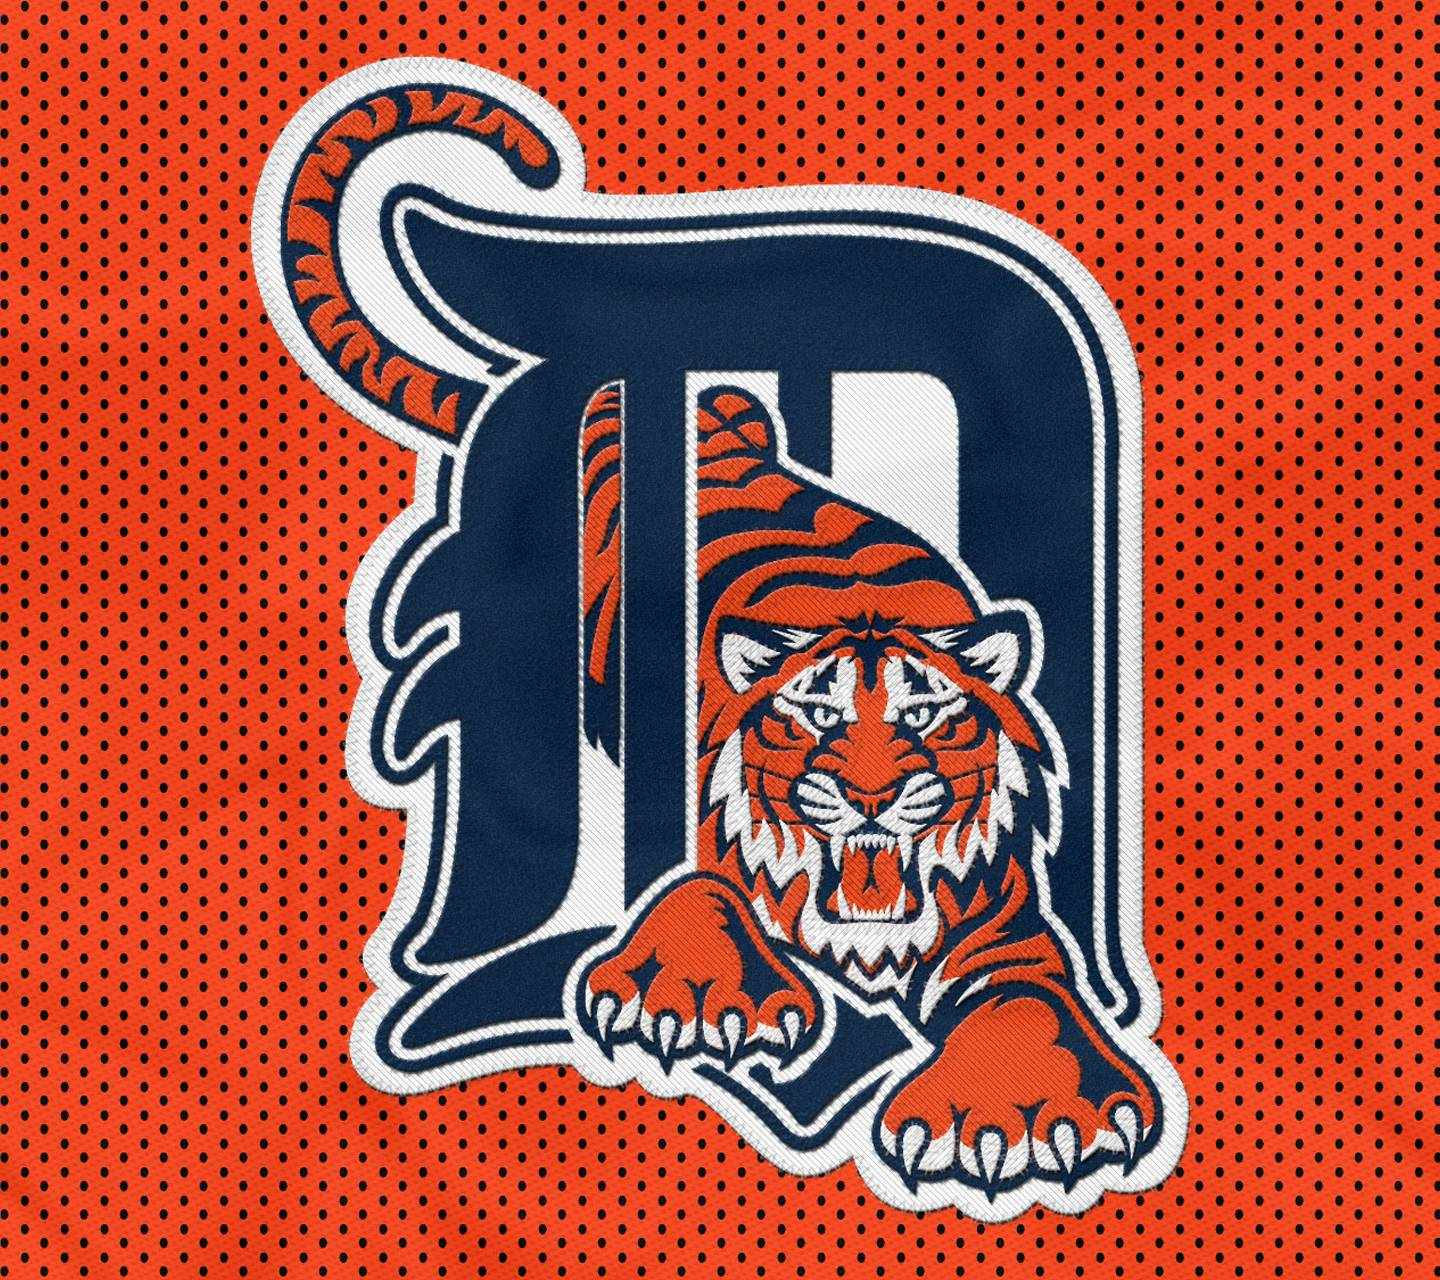 Detroit Tigers Wallpaper By Neuor 61 Free On Zedge